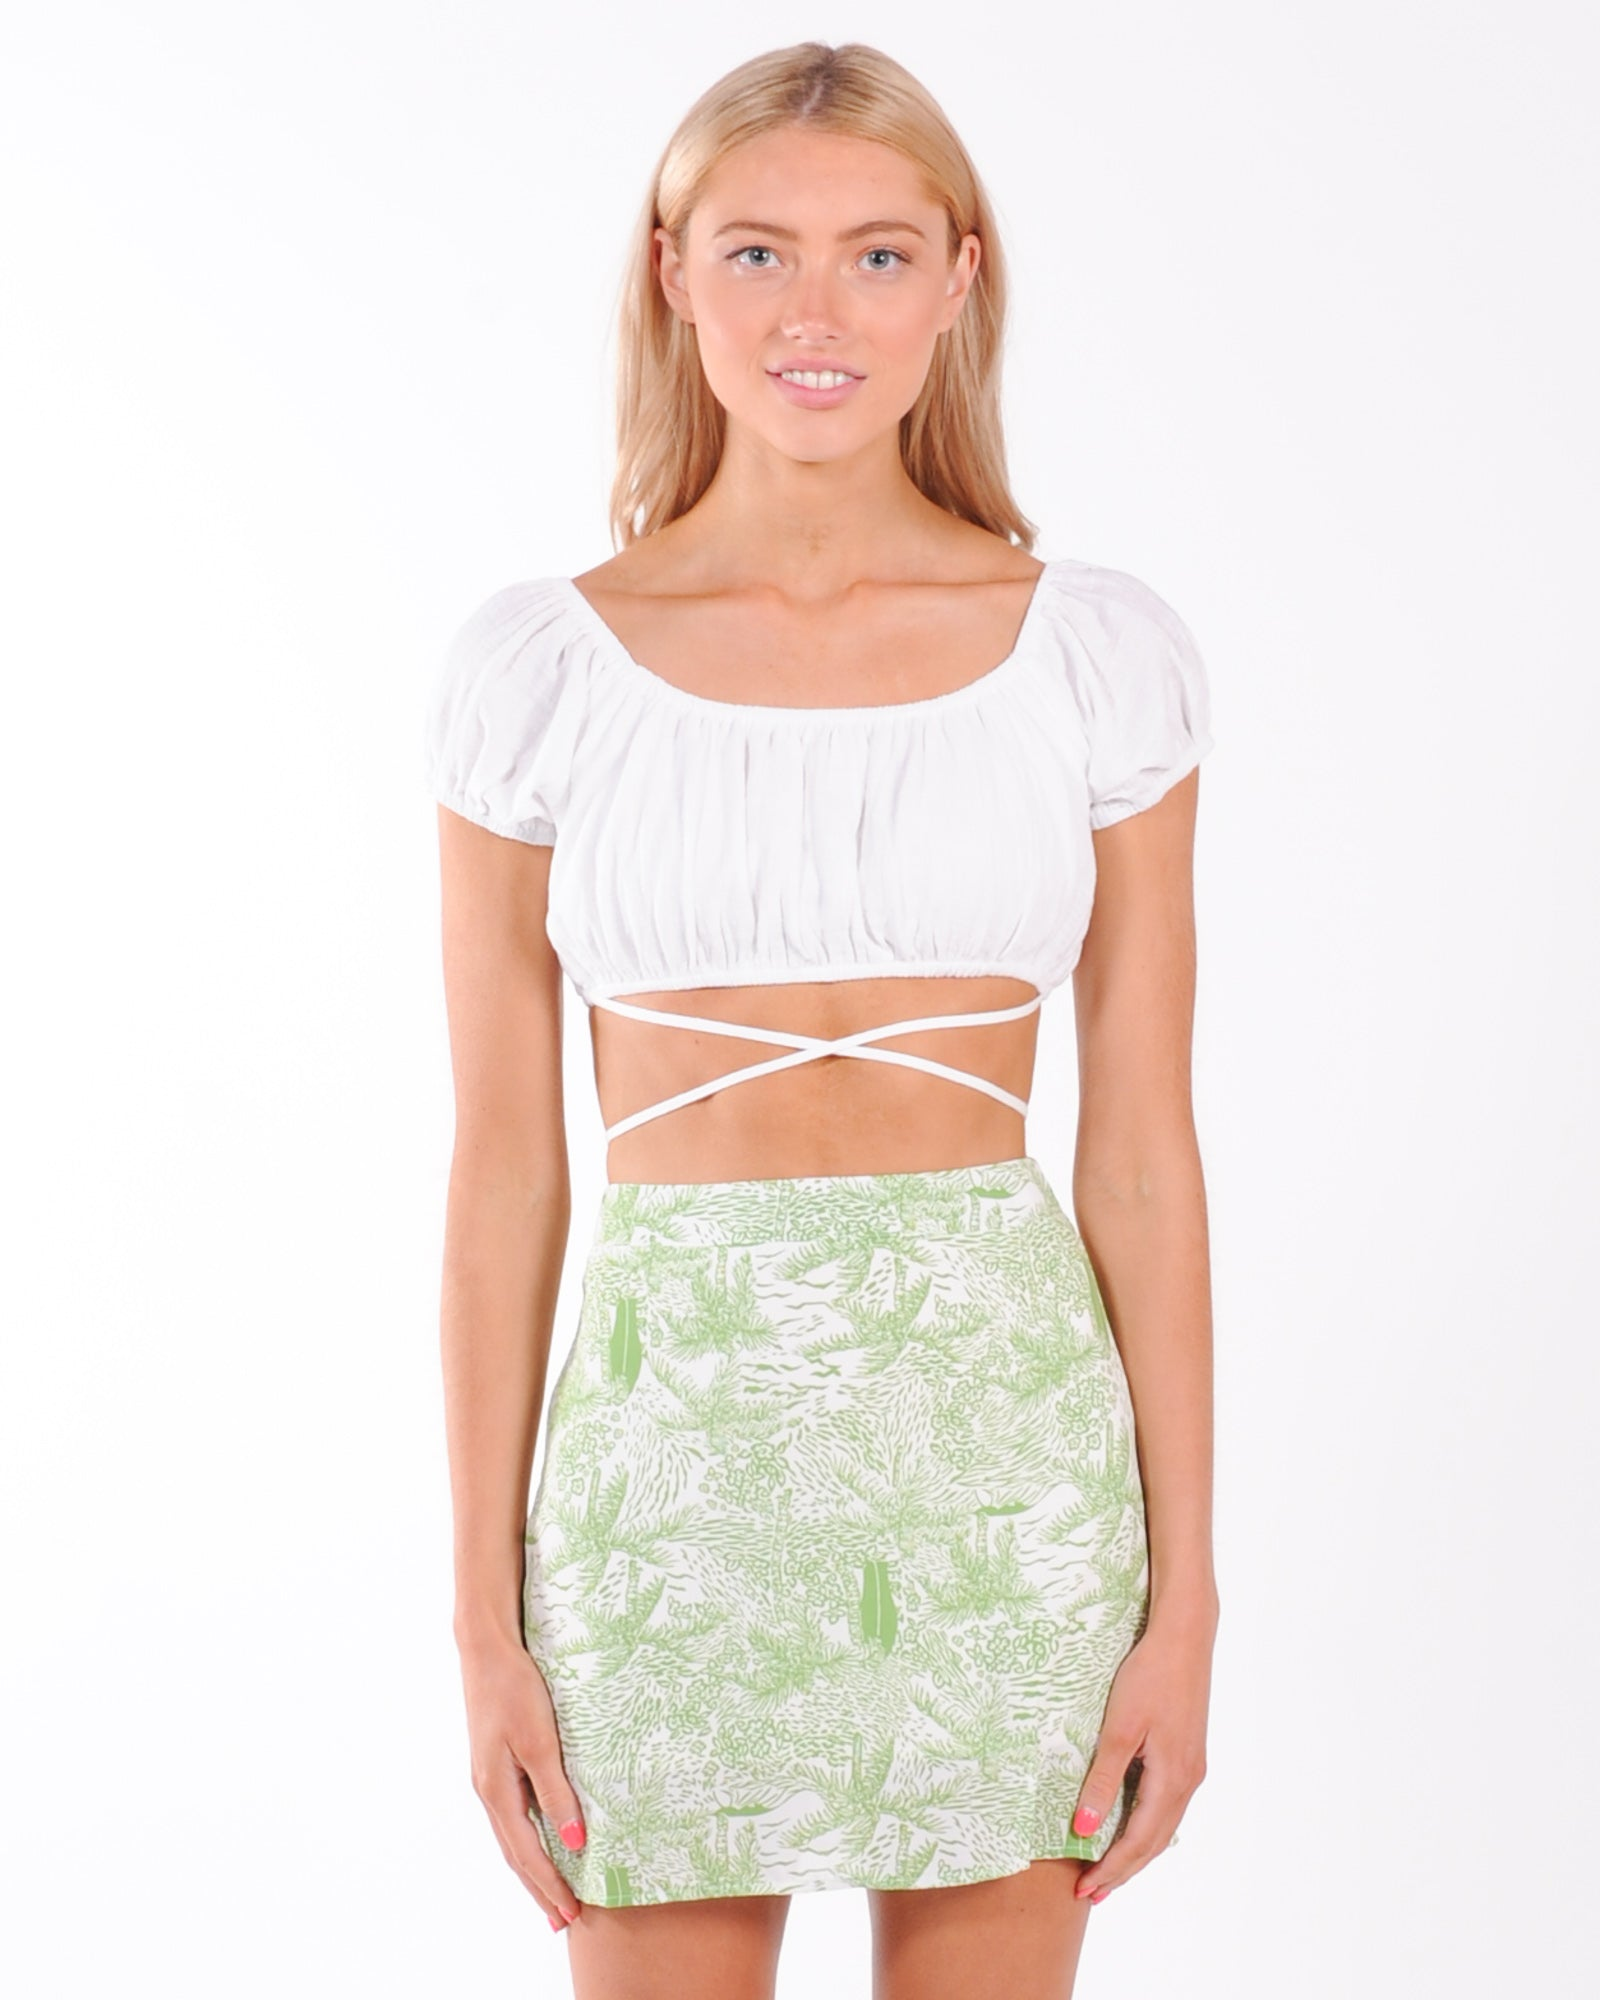 Best Of You Crop Top - White